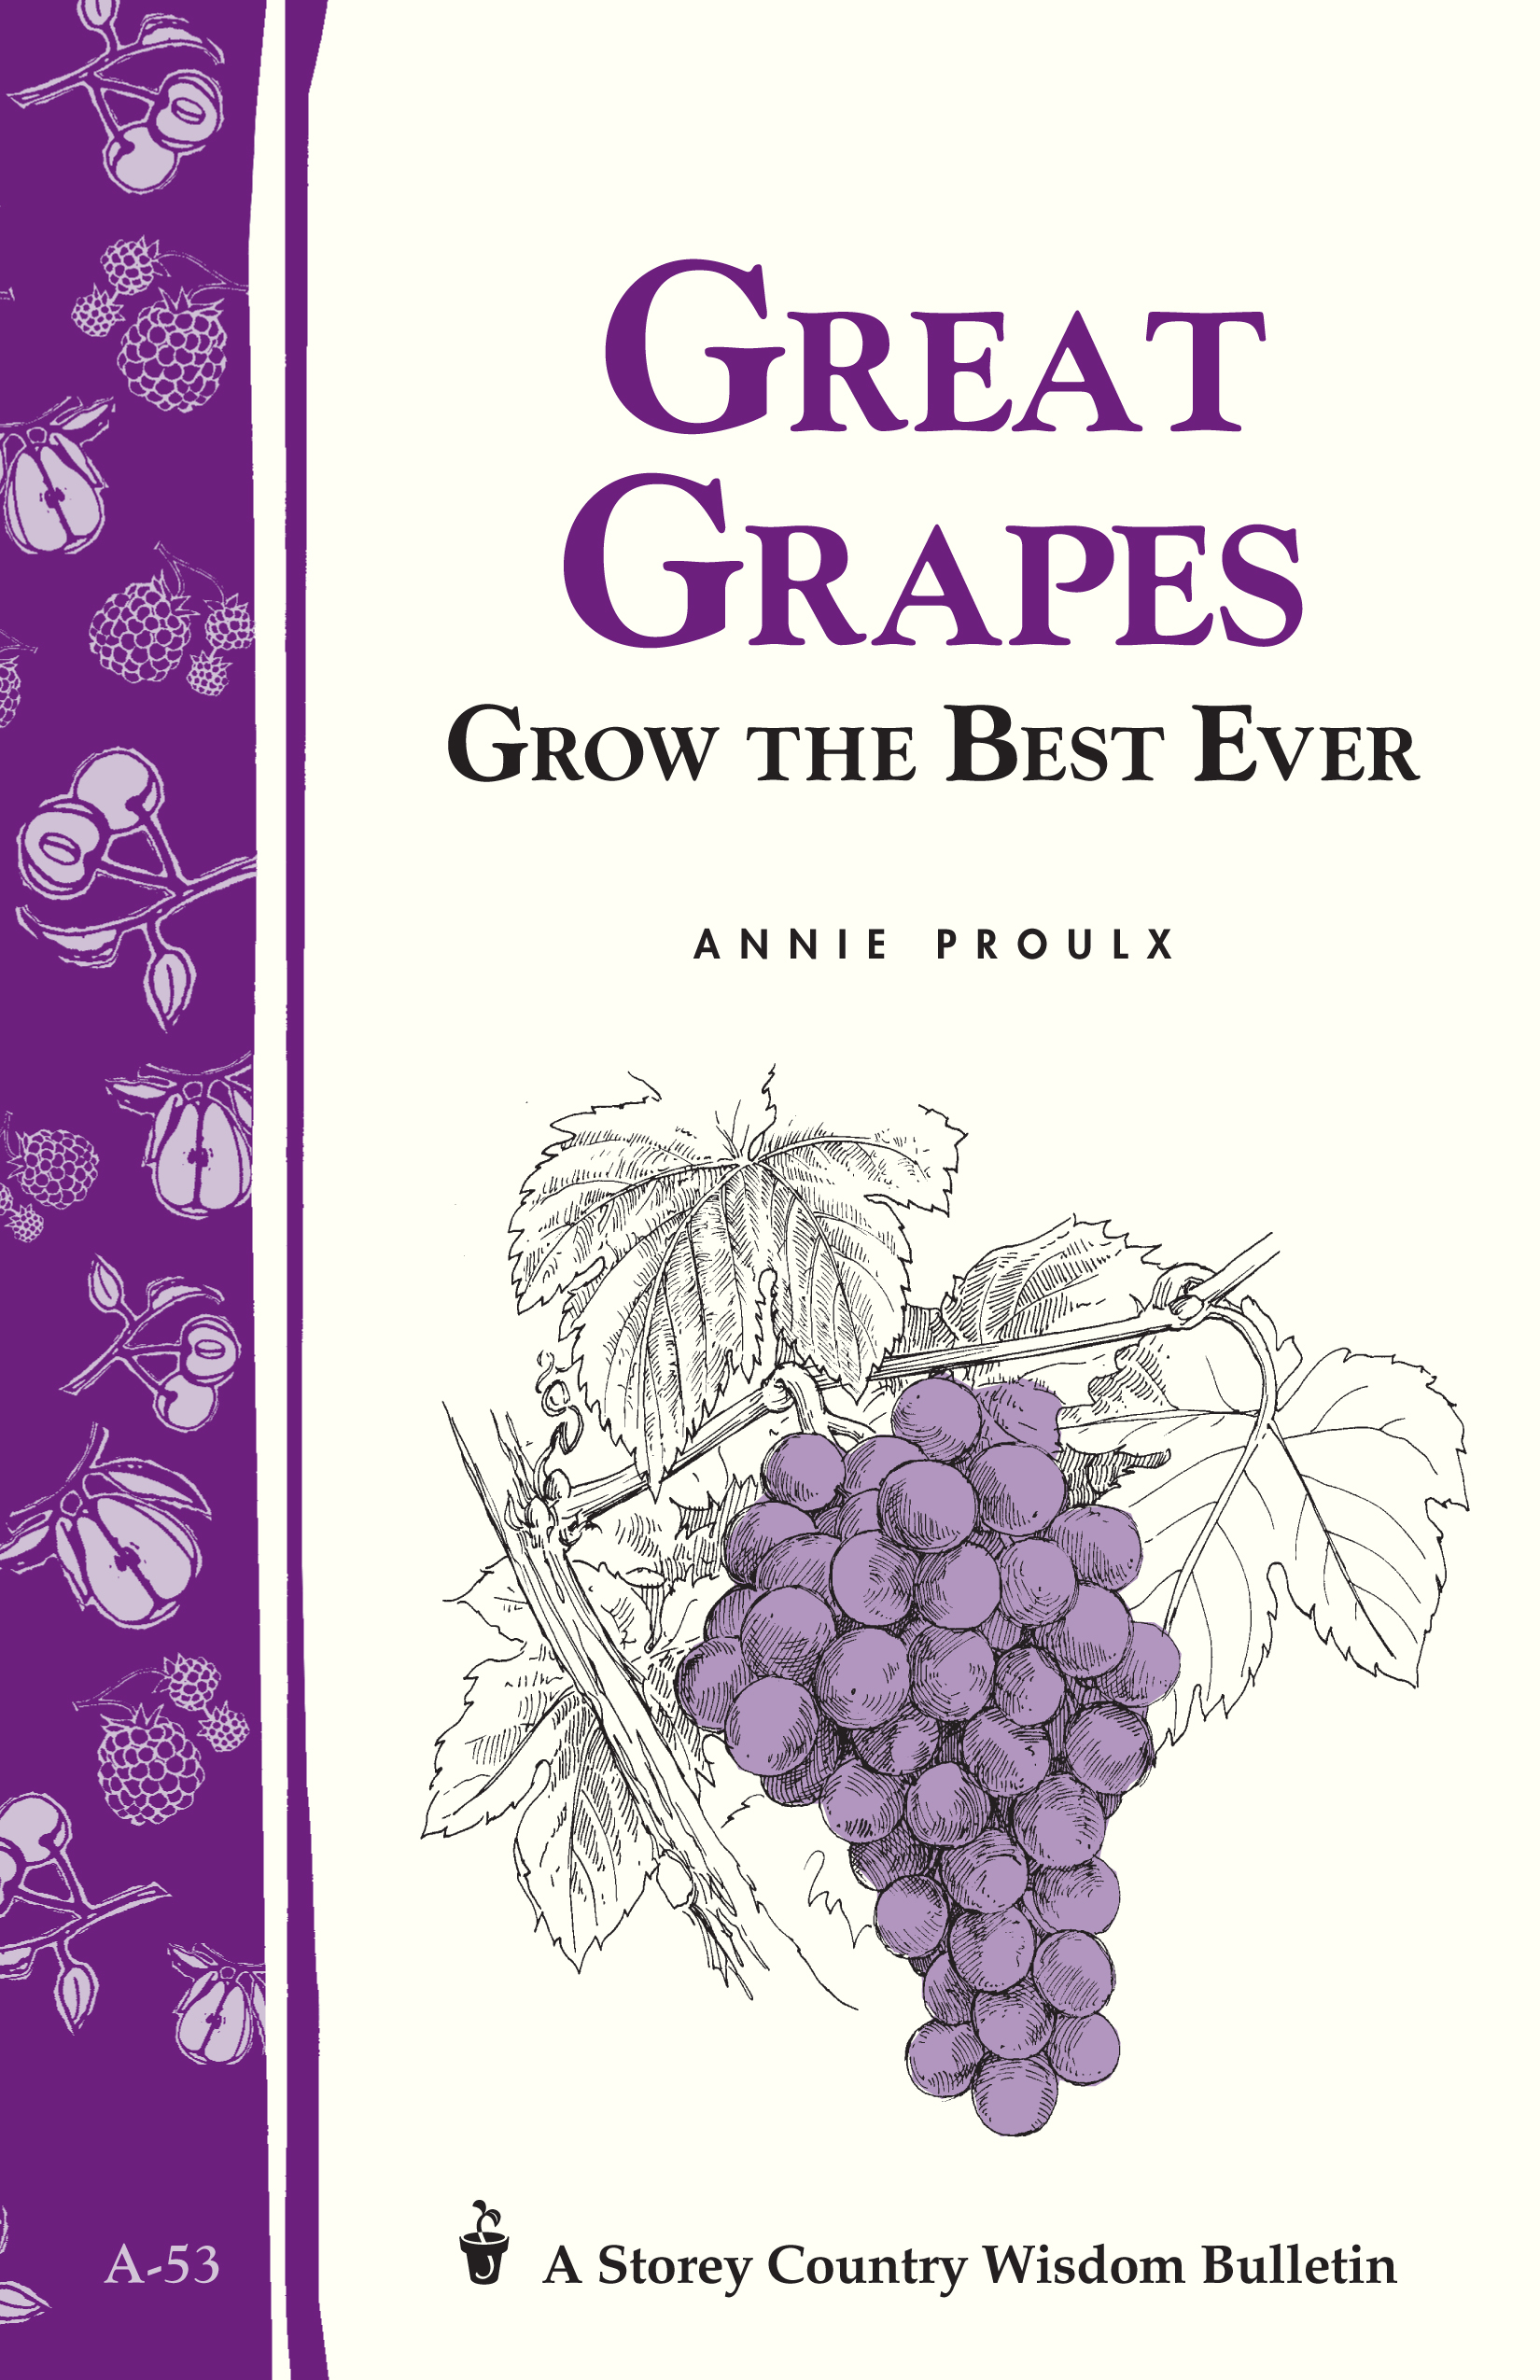 Great Grapes Grow the Best Ever / Storey's Country Wisdom Bulletin A-53 - Annie Proulx